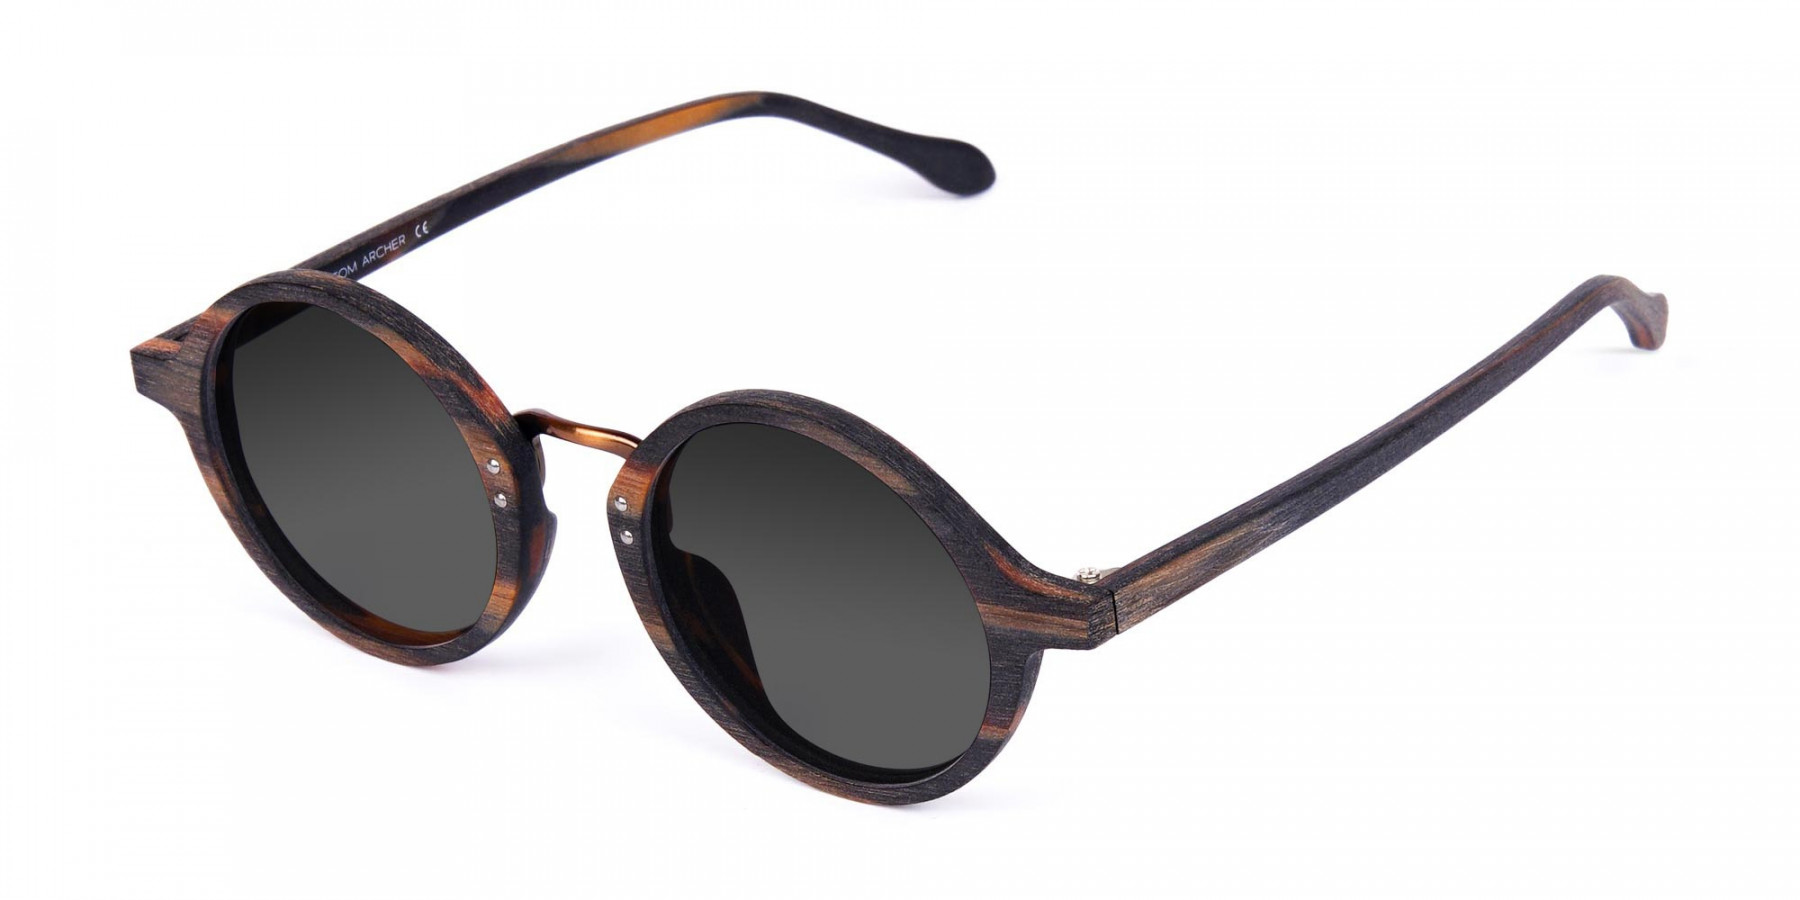 Wooden-Tortoise-Round-Sunglasses-with-Grey-Tint-3